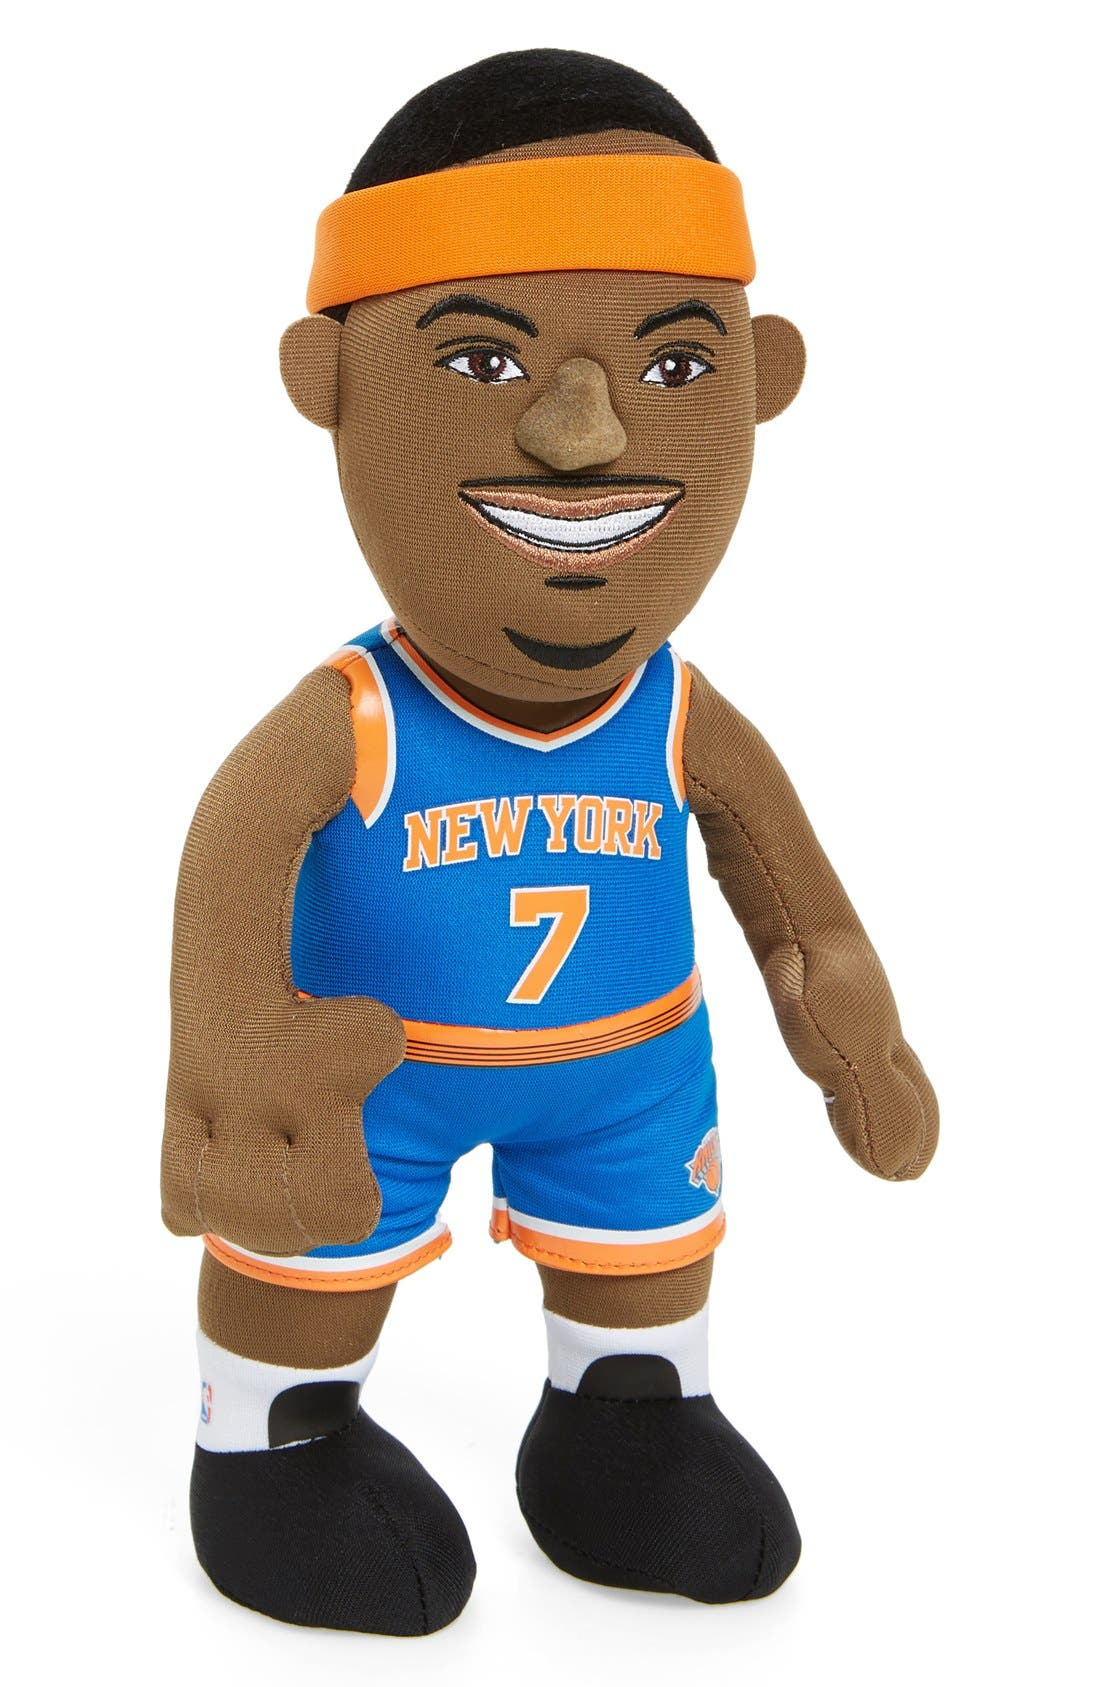 BLEACHER CREATURES New York Knicks Carmelo Anthony Plush